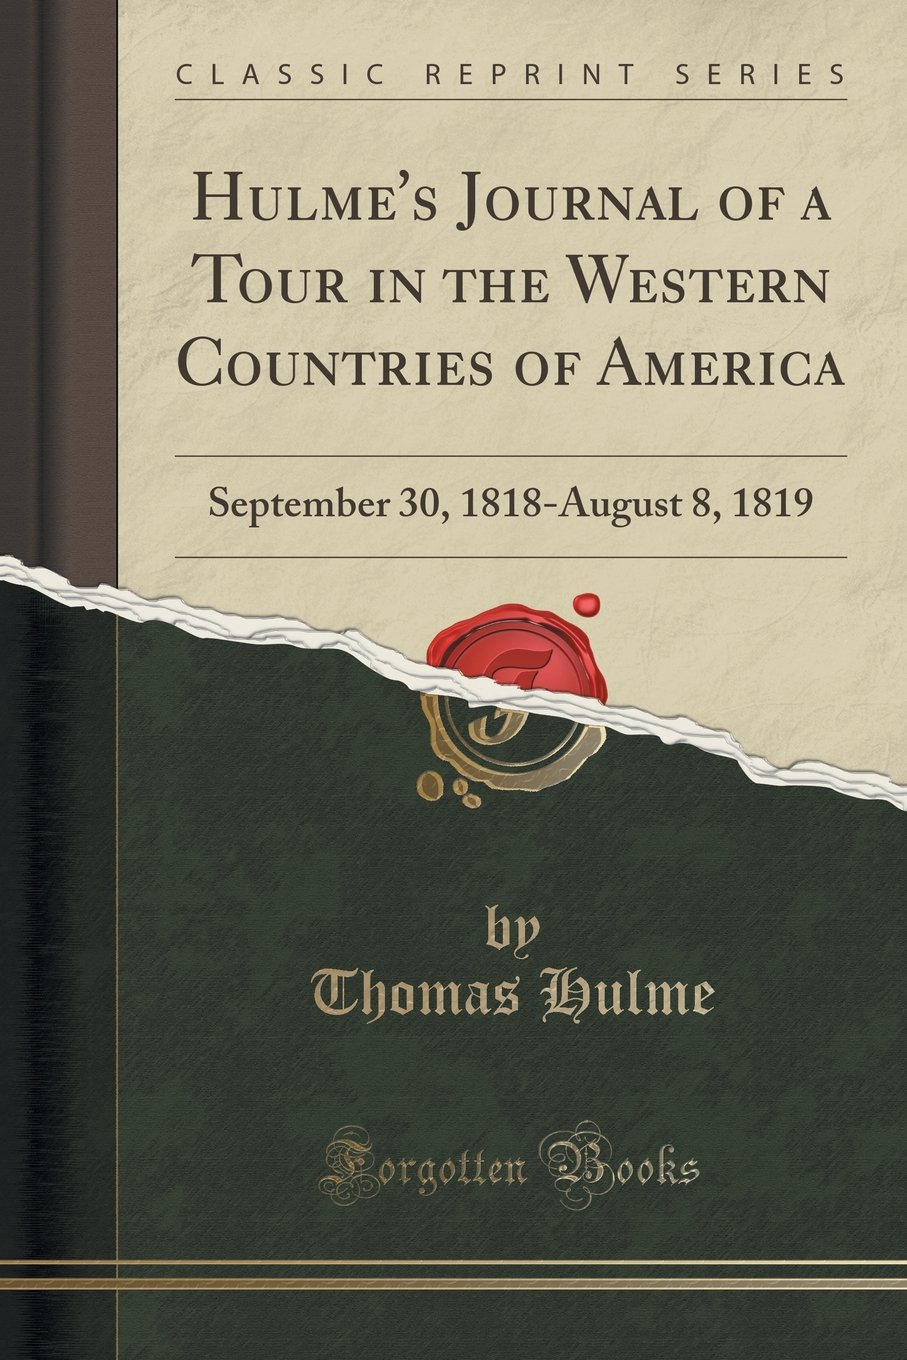 Download Hulme's Journal of a Tour in the Western Countries of America: September 30, 1818-August 8, 1819 (Classic Reprint) pdf epub